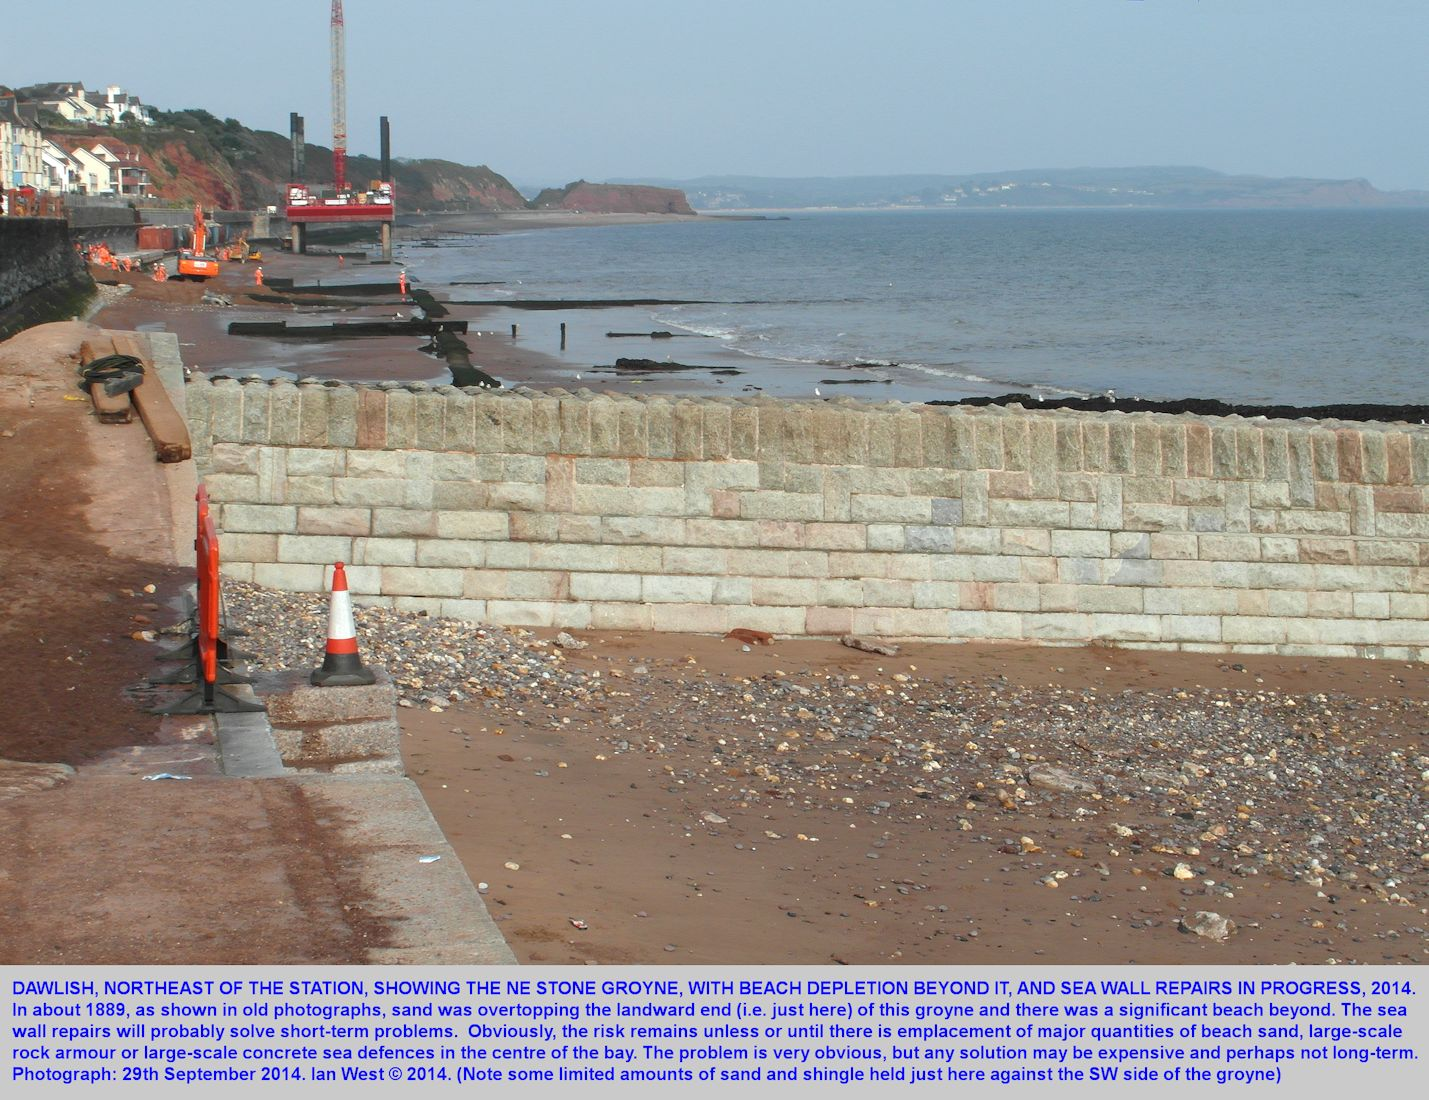 The northeastern stone groyne at Dawlish sea front and beyond the repair works of September 2014 on the former gap in the railway line and sea wall, Dawlish, Devon